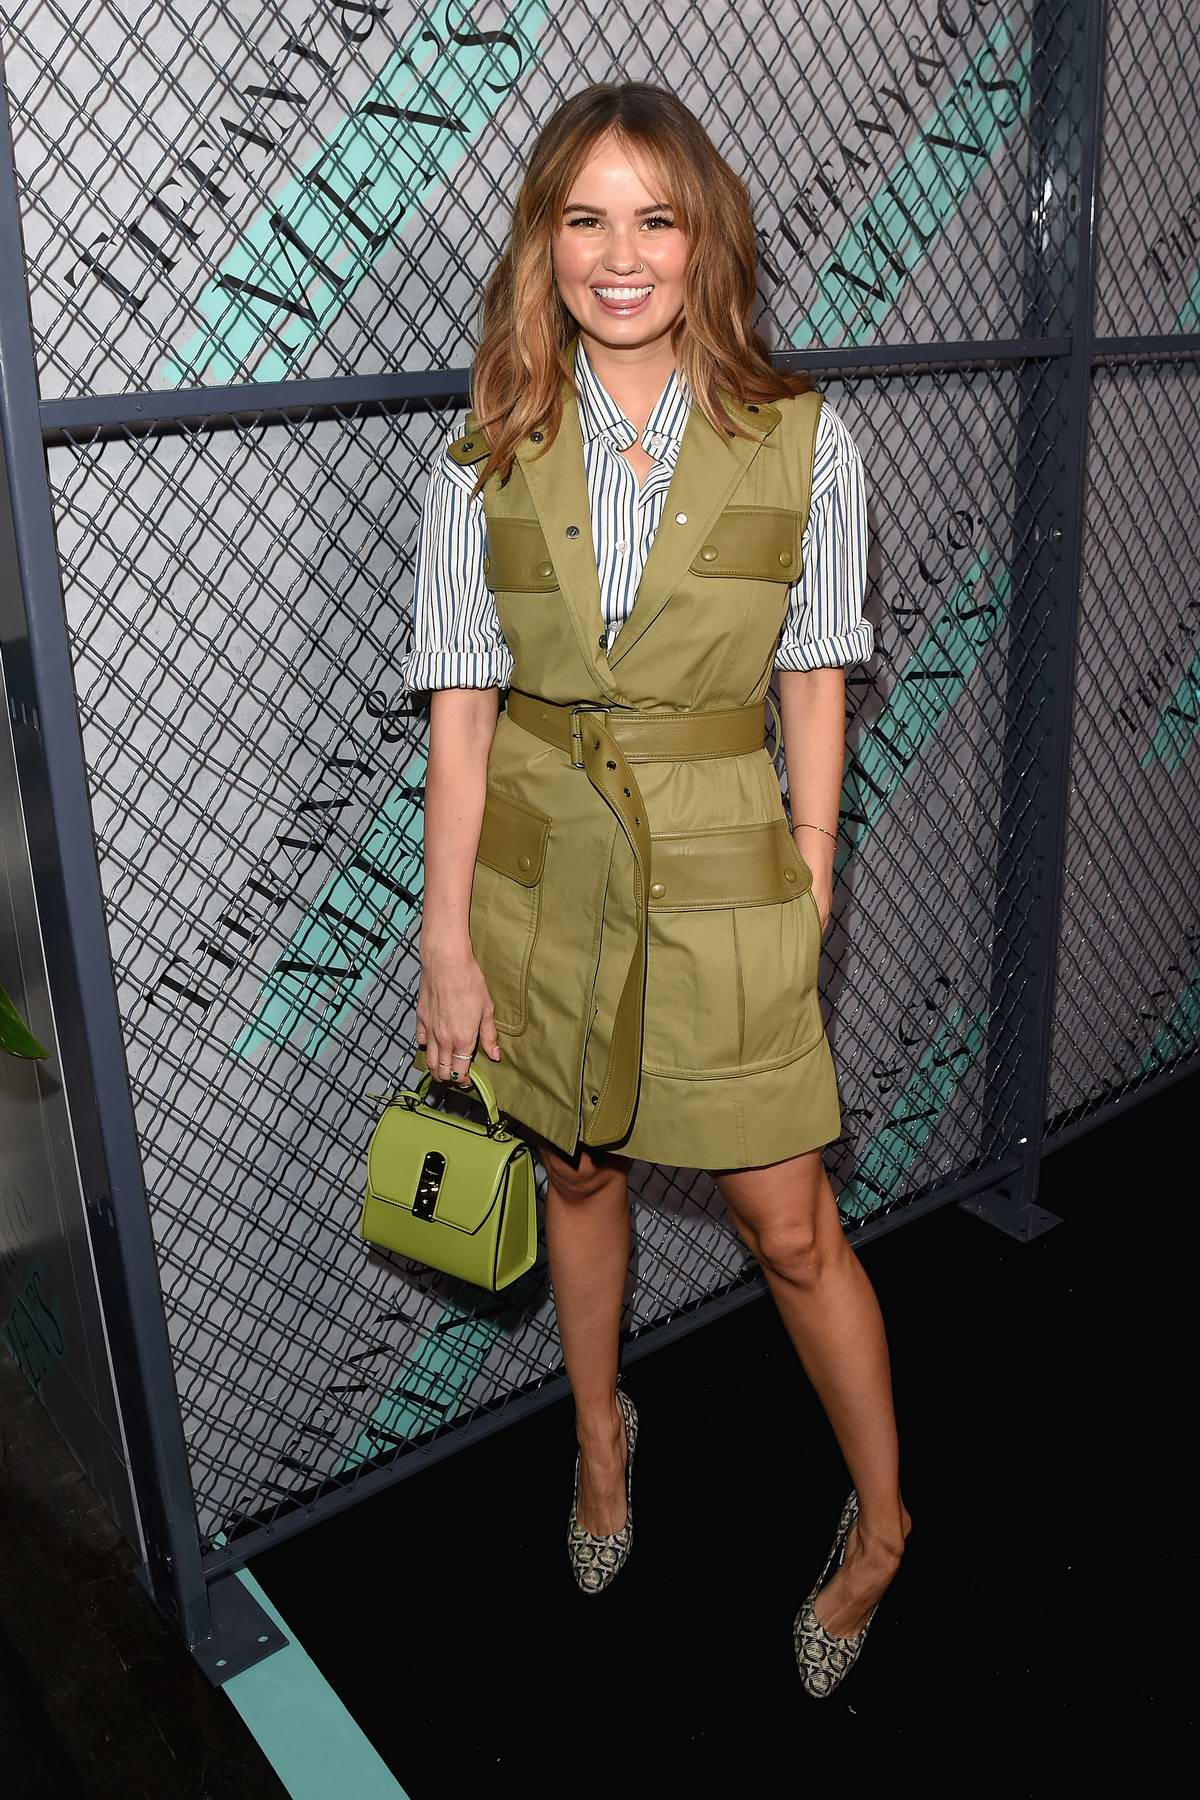 Debby Ryan attends the launch of new Tiffany and Co Men's Collection at Hollywood Athletic Club in Hollywood, California